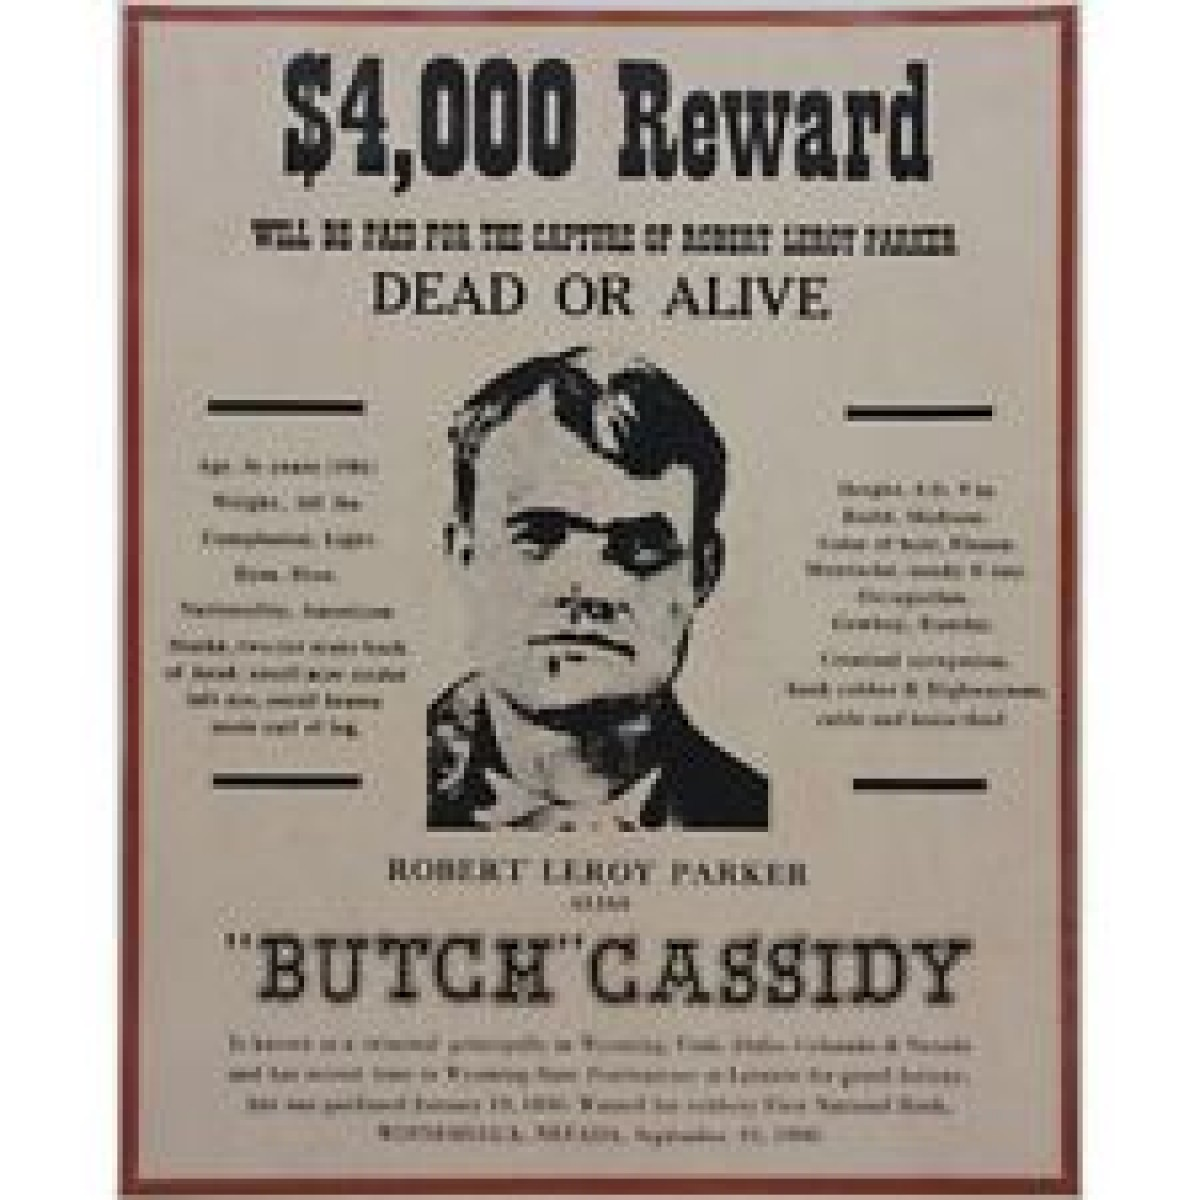 Butch Cassidy Framed Wanted Poster History Memorabilia